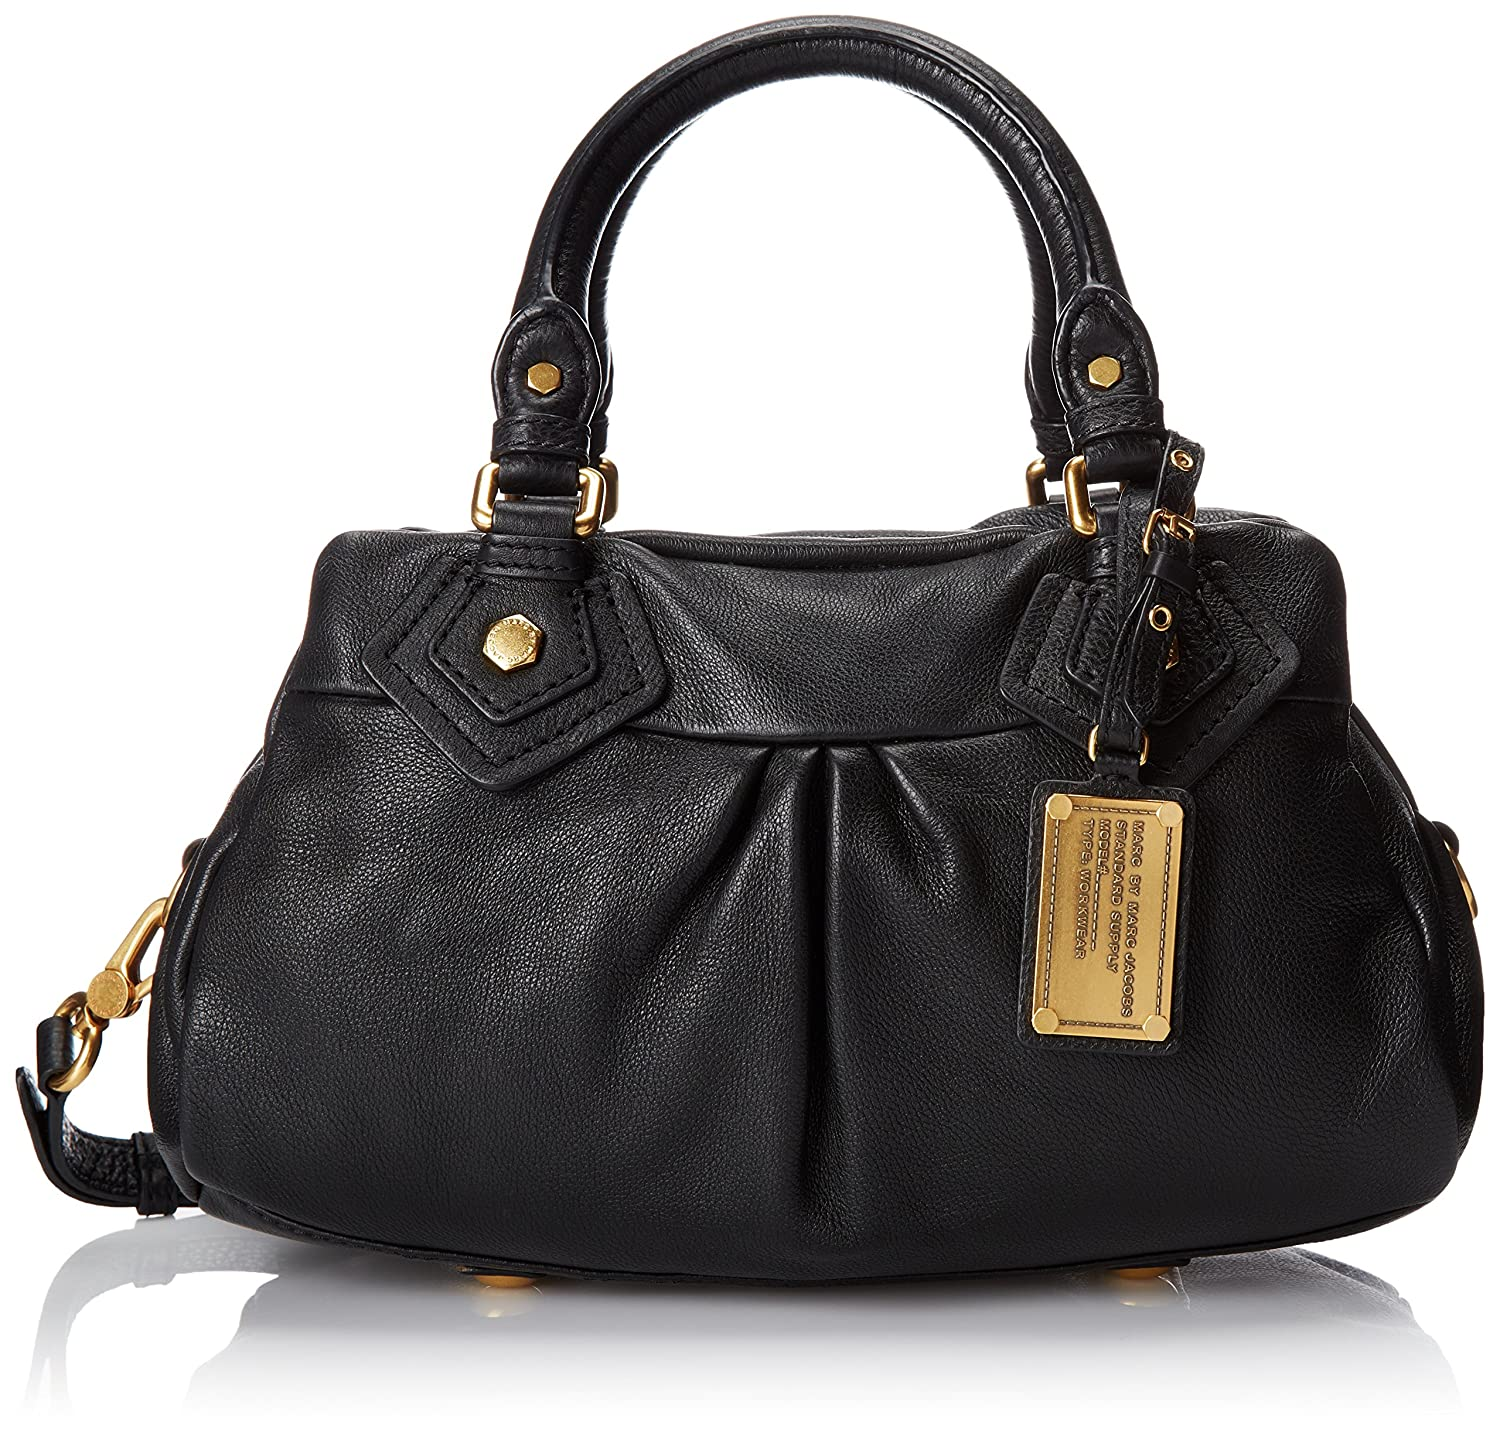 5b02ff9a02b4 Amazon.com  Marc by Marc Jacobs Classic Q Baby Groovee Satchel Black One  Size  Marc By Marc Jacobs  Clothing